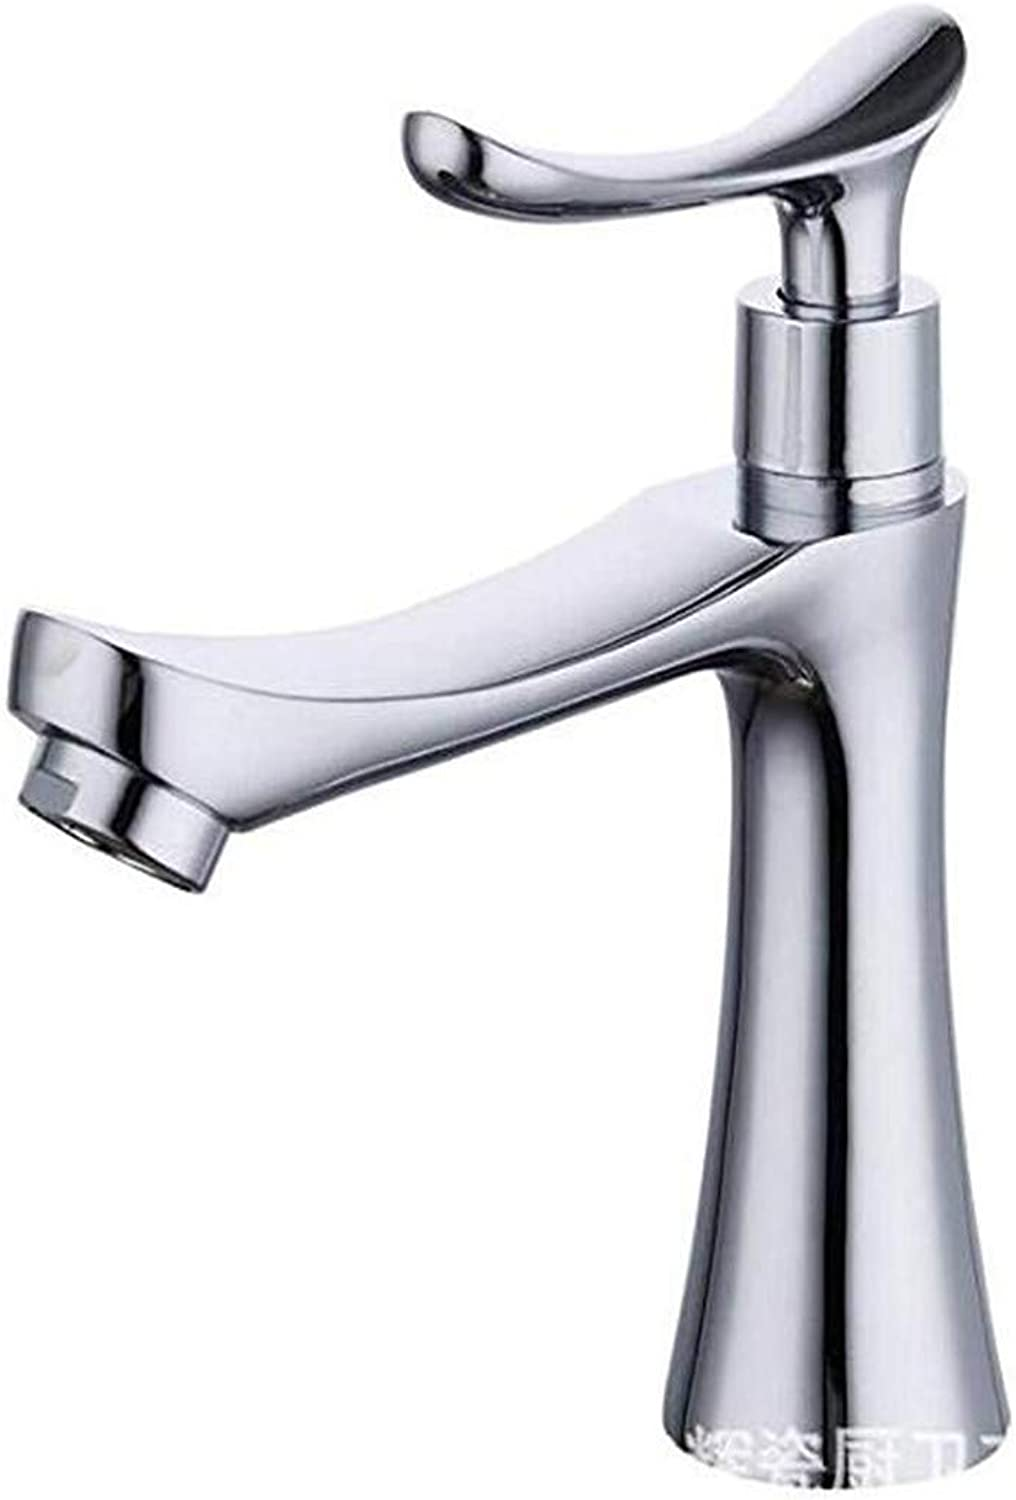 Taps Kitchen Faucetbathroom Sink Tapbathroom Basin Faucet Single Hole Alloy Single Cooling Faucet Chrome Plated Sink Faucet